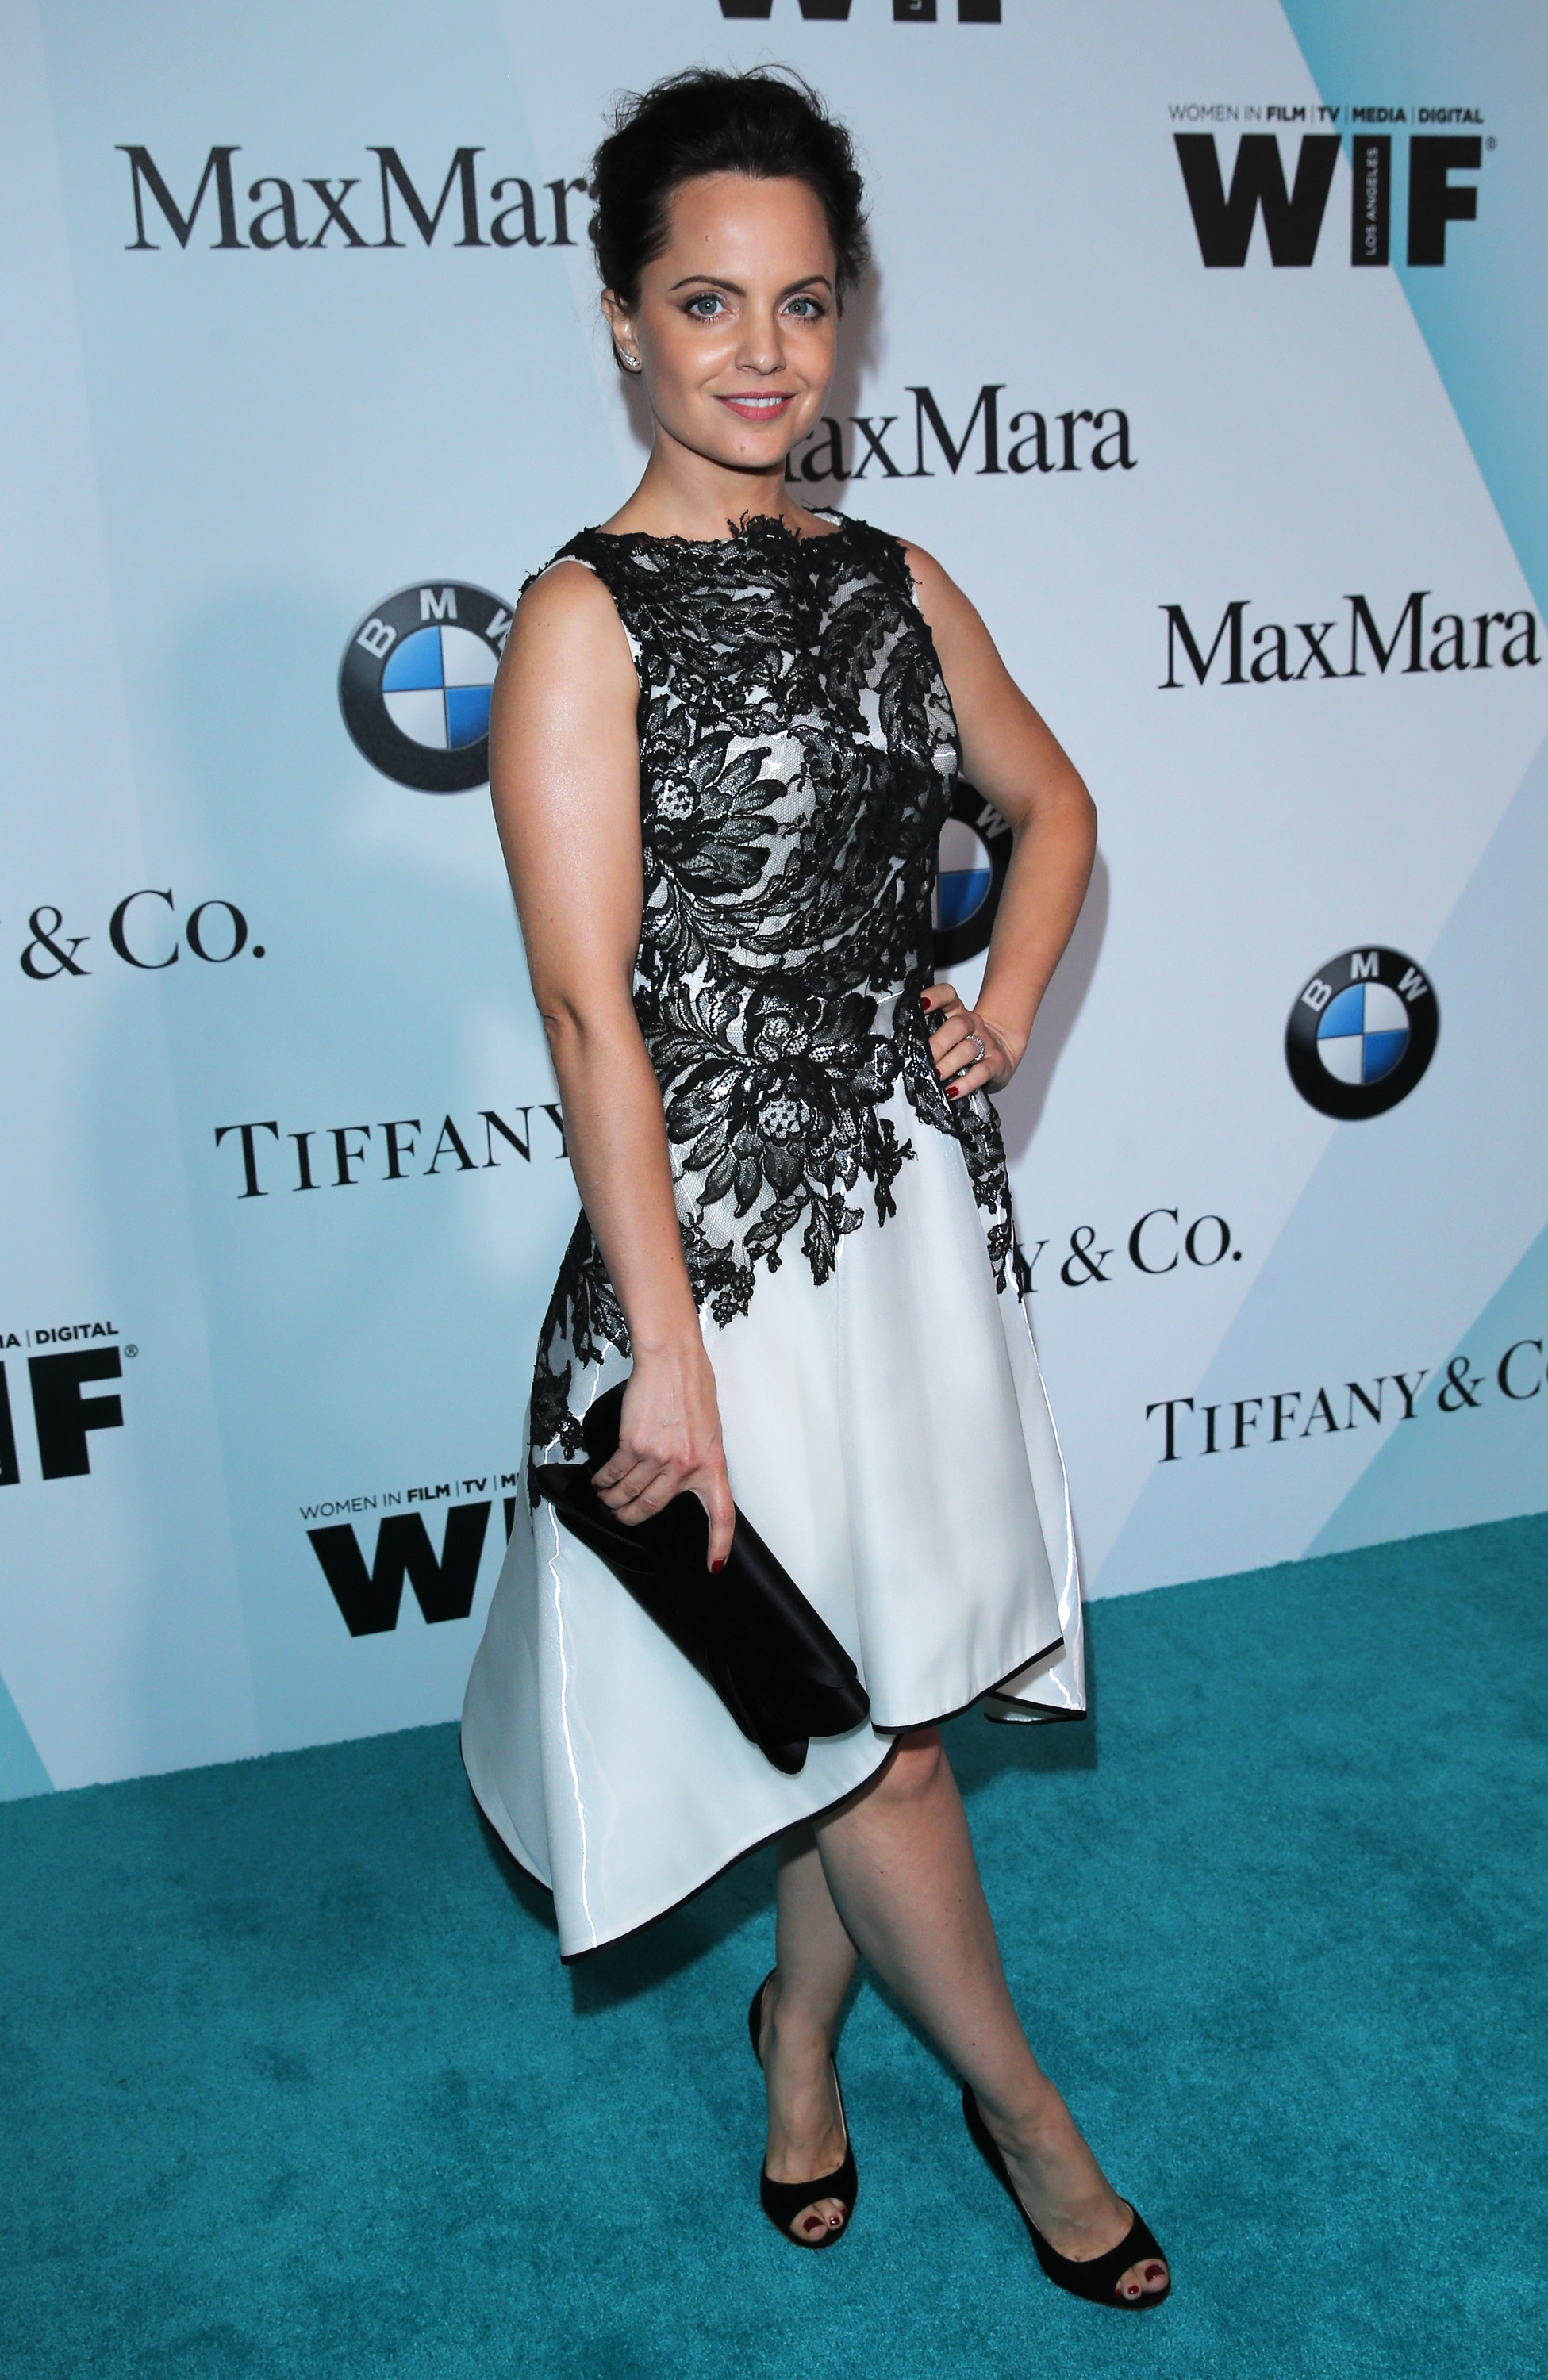 CENTURY CITY, CA - JUNE 16:  Actress Mena Suvari attends Women In Film 2015 Crystal + Lucy Awards Presented by Max Mara, BMW of North America, and Tiffany & Co. at the Hyatt Regency Century Plaza on June 16, 2015 in Century City, California.  (Photo by Mark Davis/Getty Images for Women in Film)